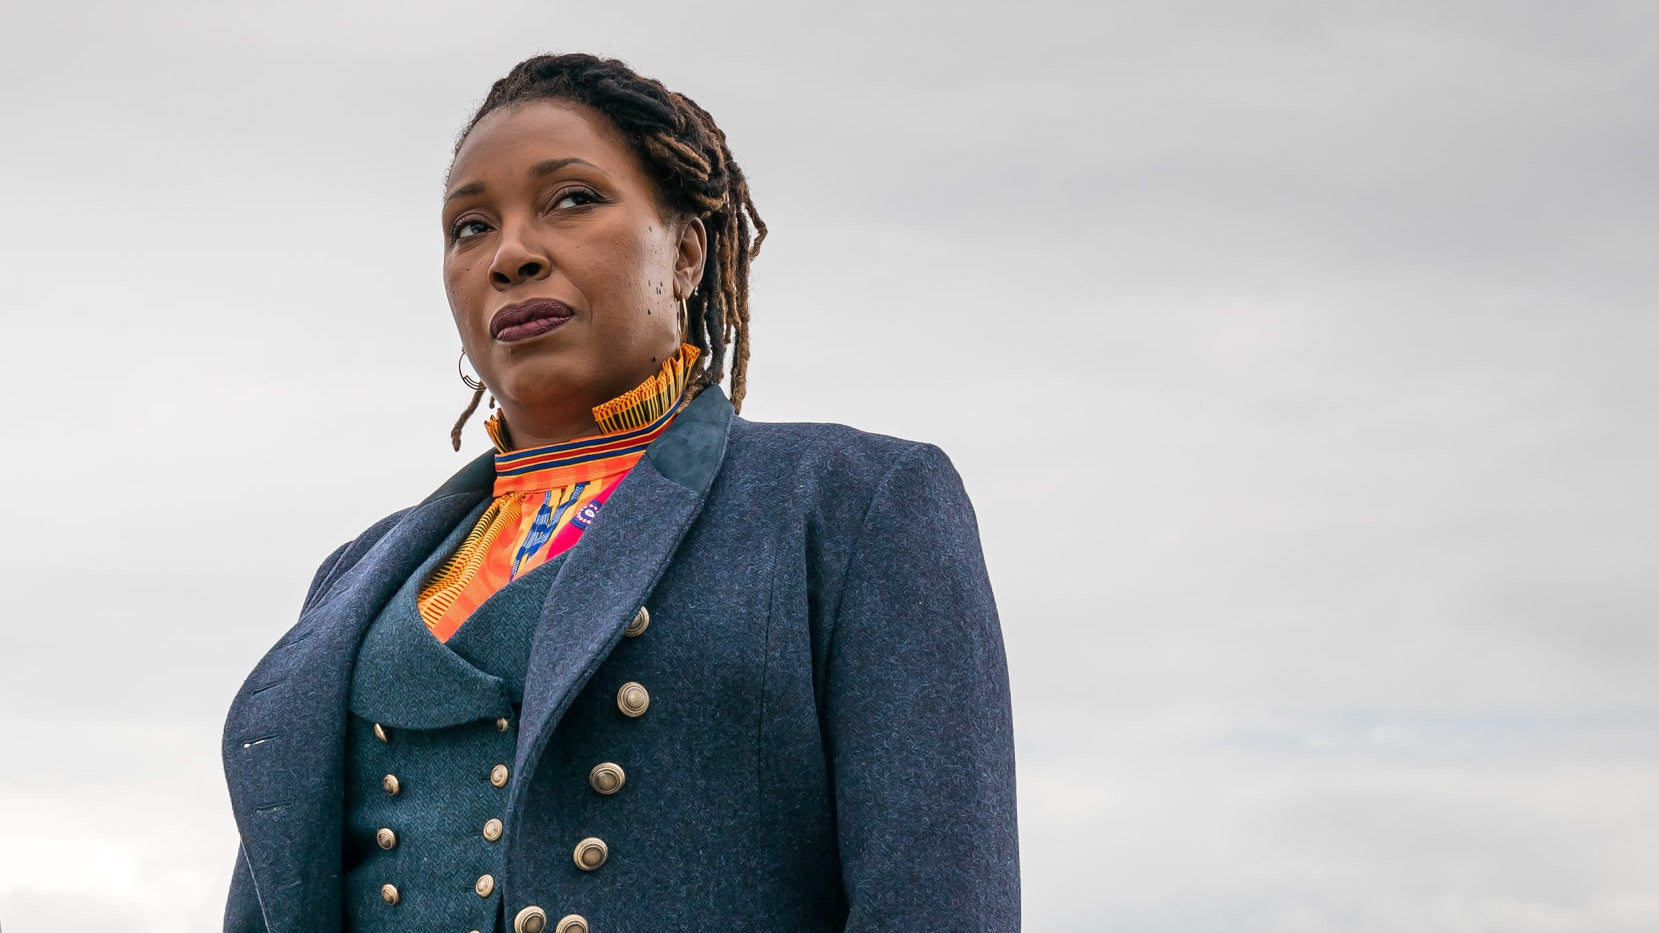 Chris Chibnall Cast A Black Woman As The Doctor, But It's Only Just A Start